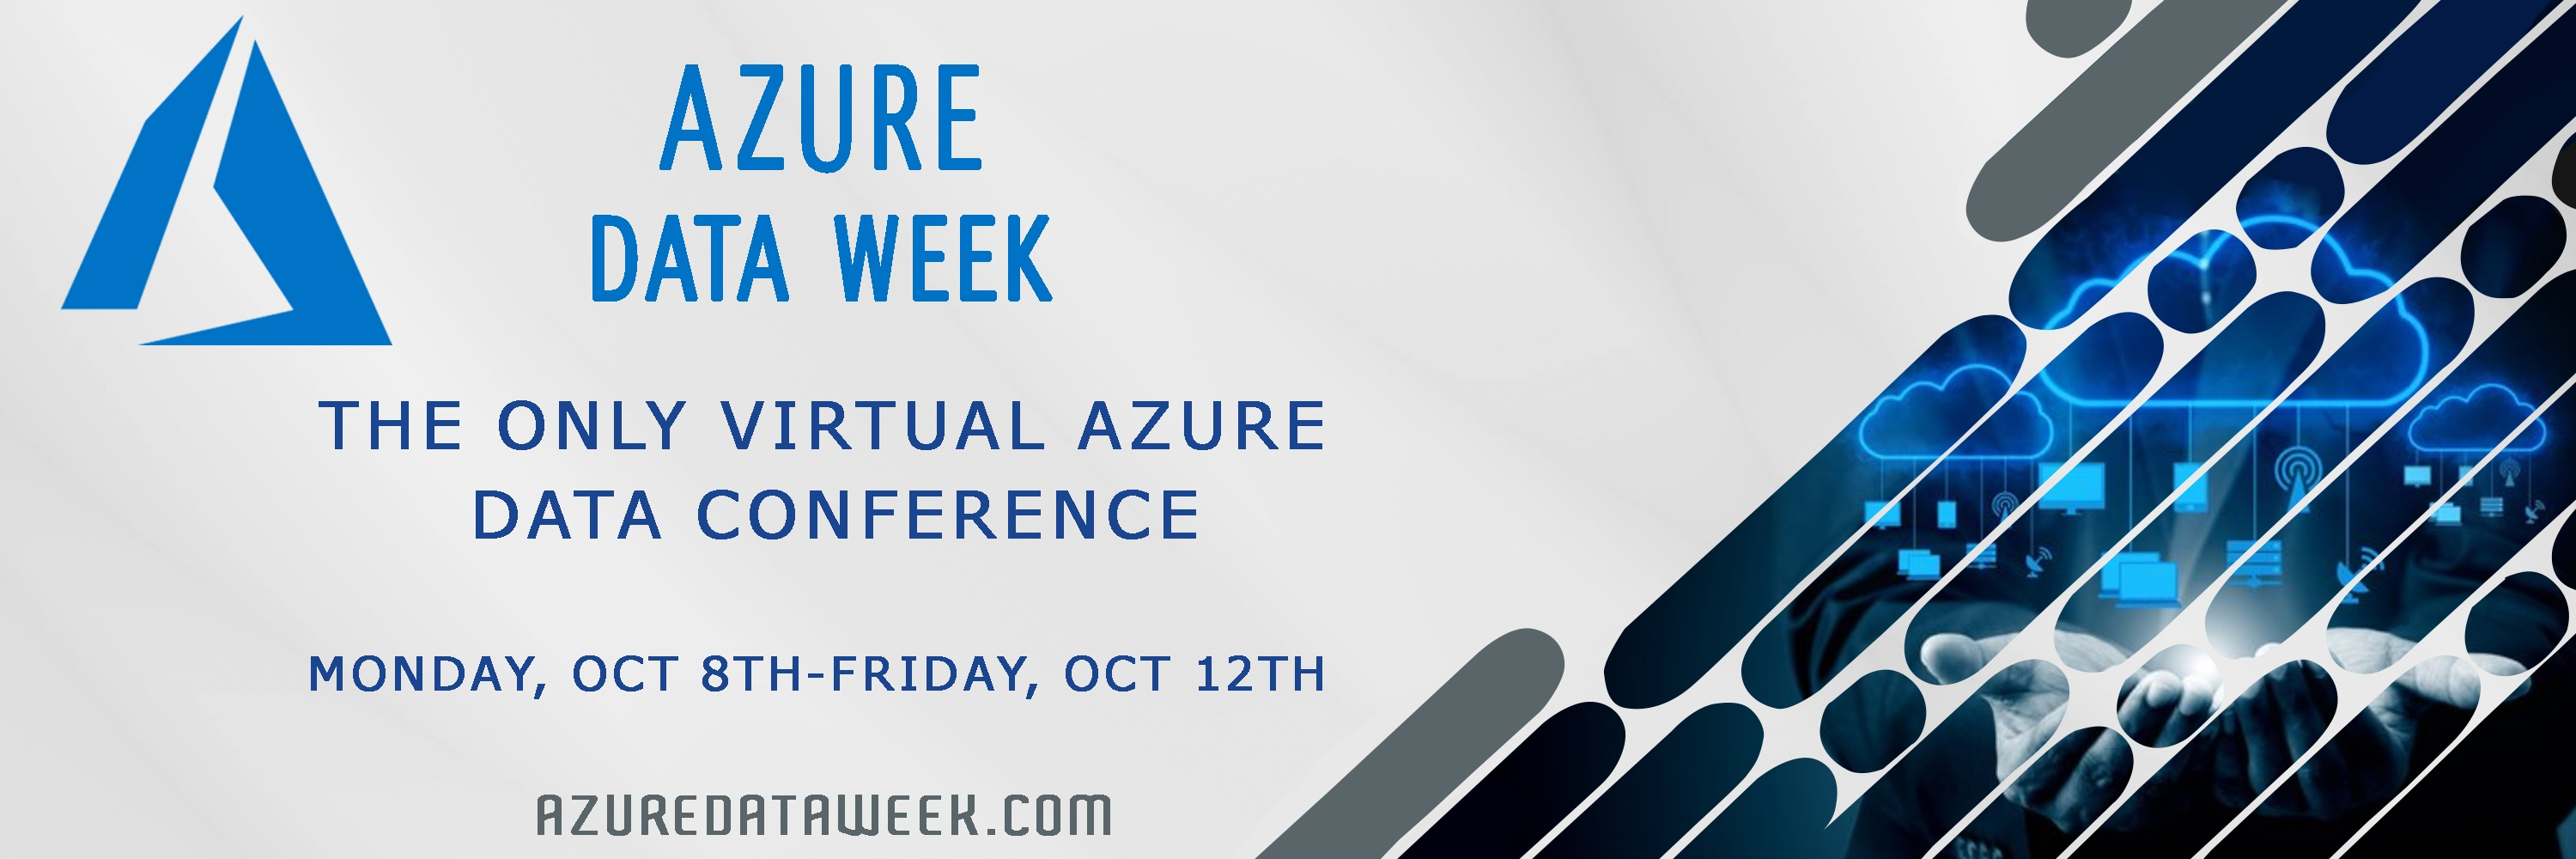 BannerFinal Azure Data Week